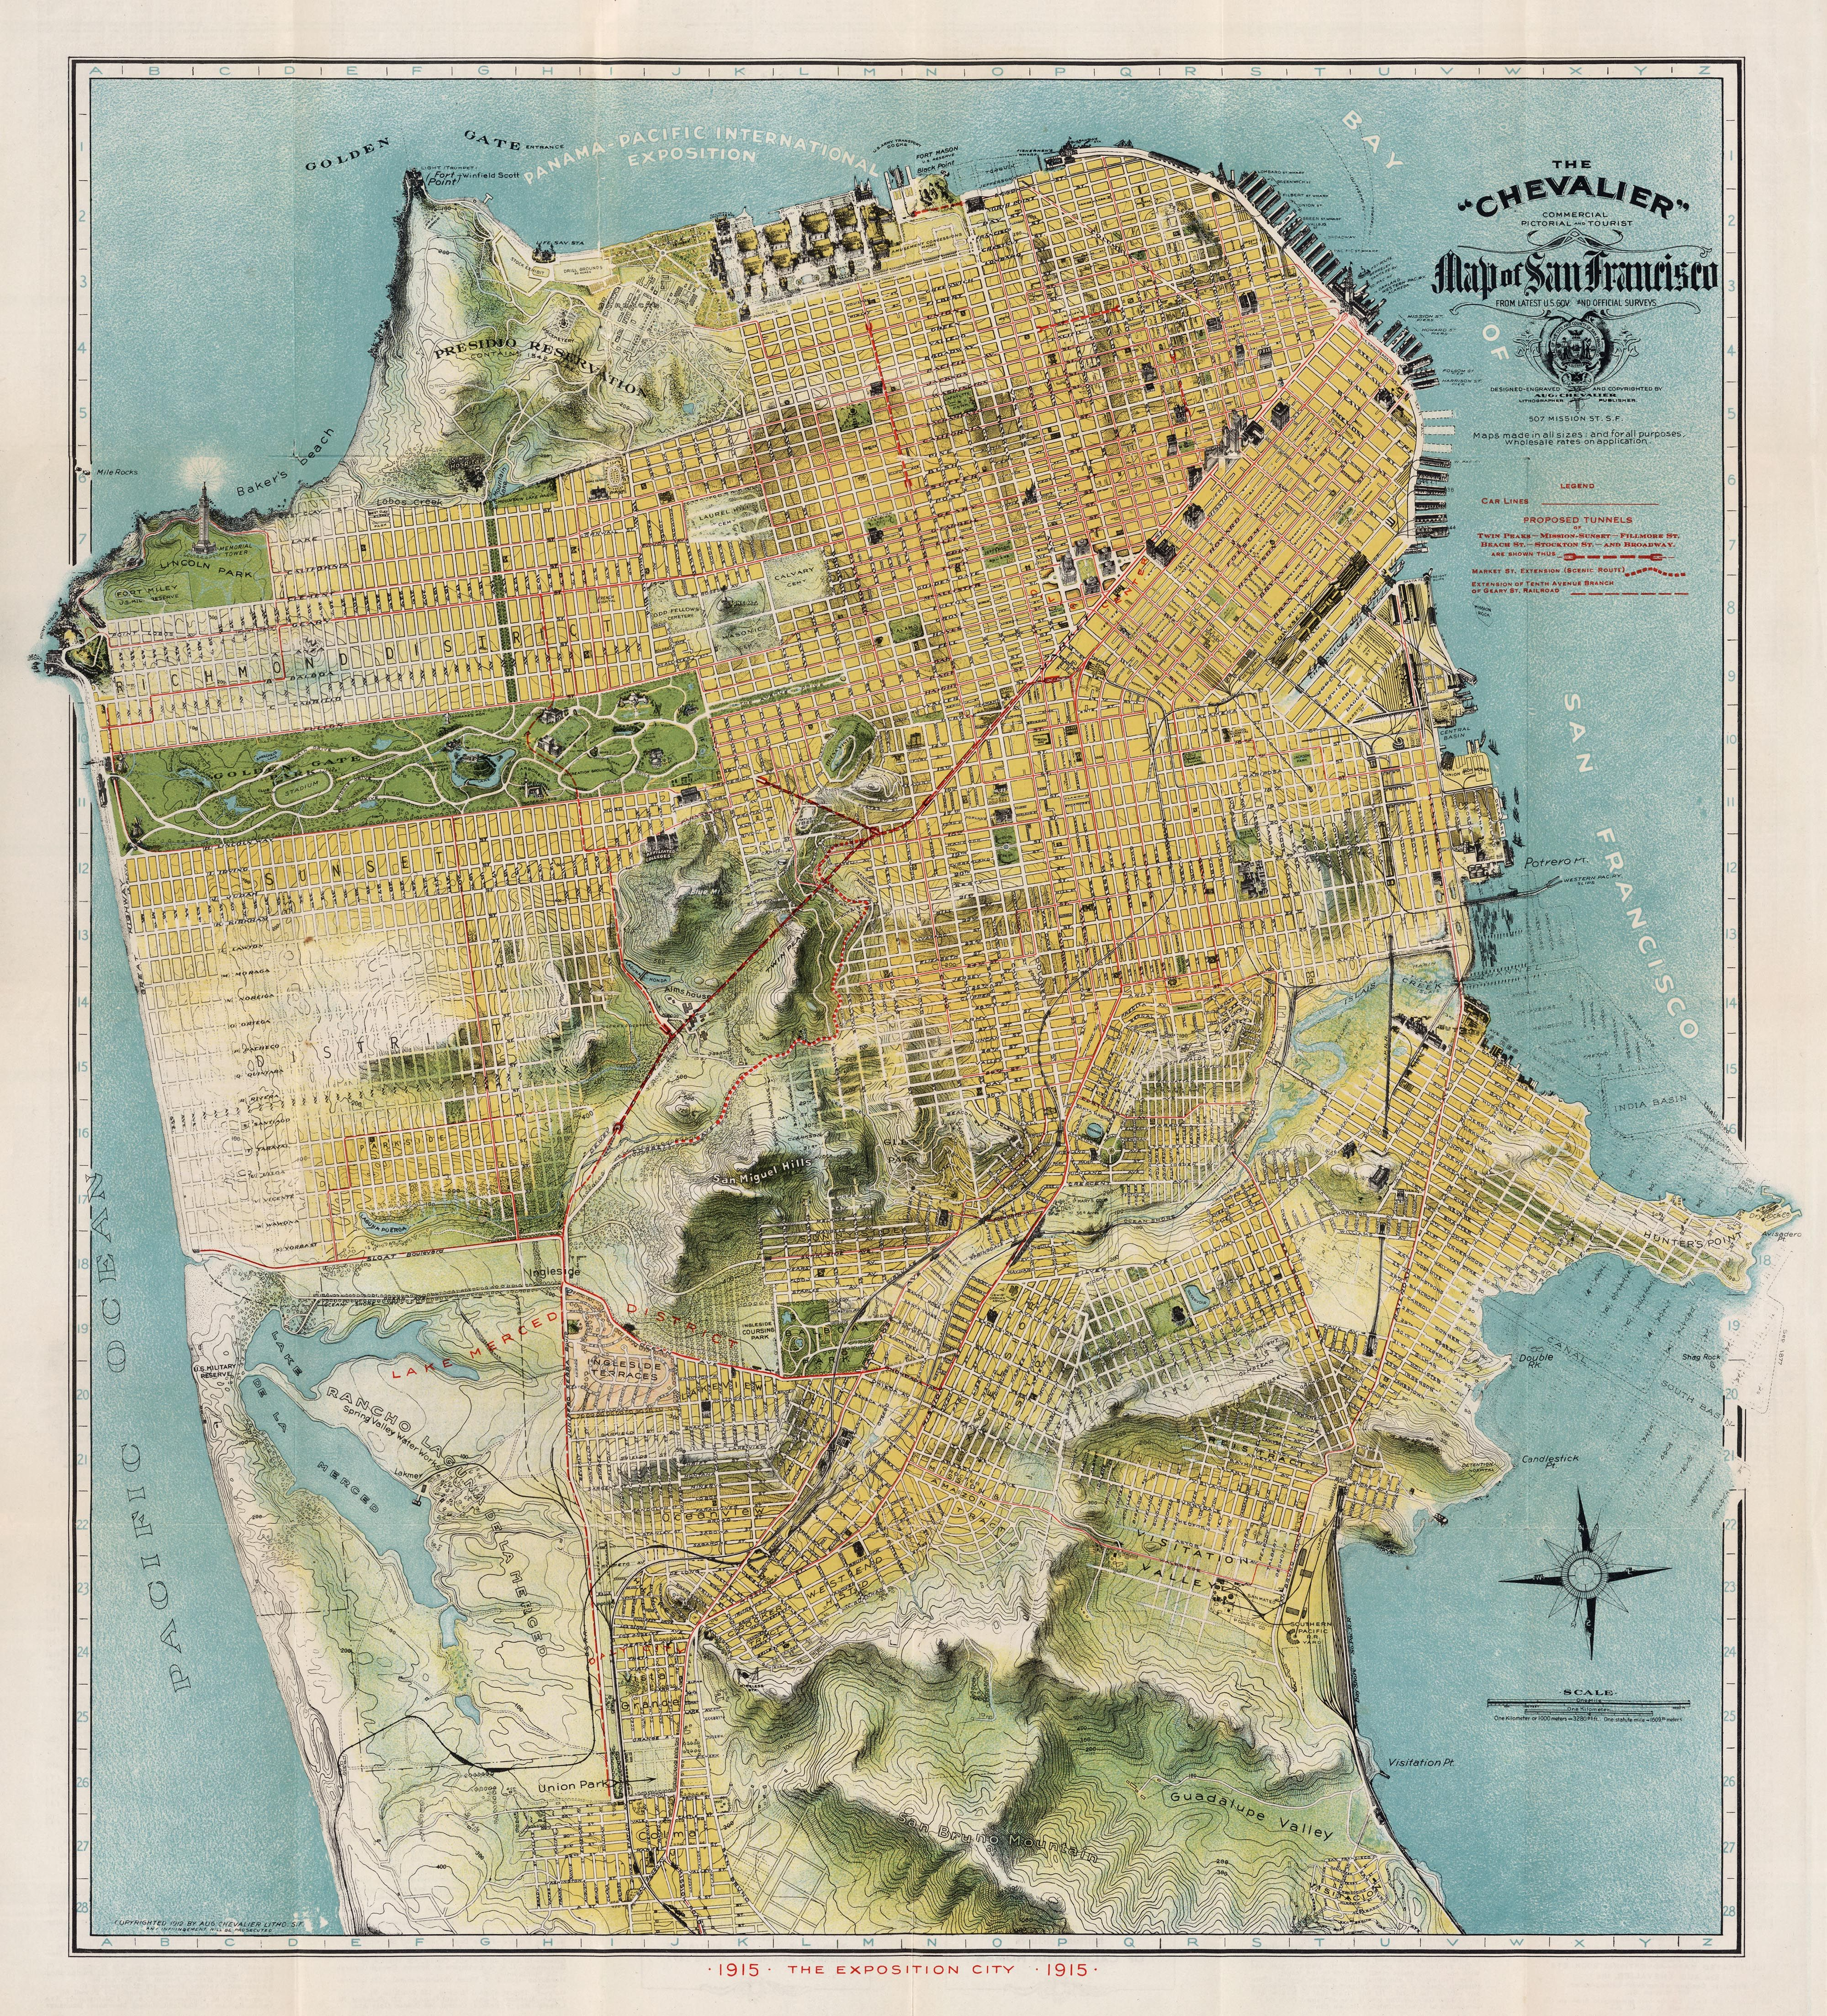 Vintage Infodesign 35 San francisco Cartography and City